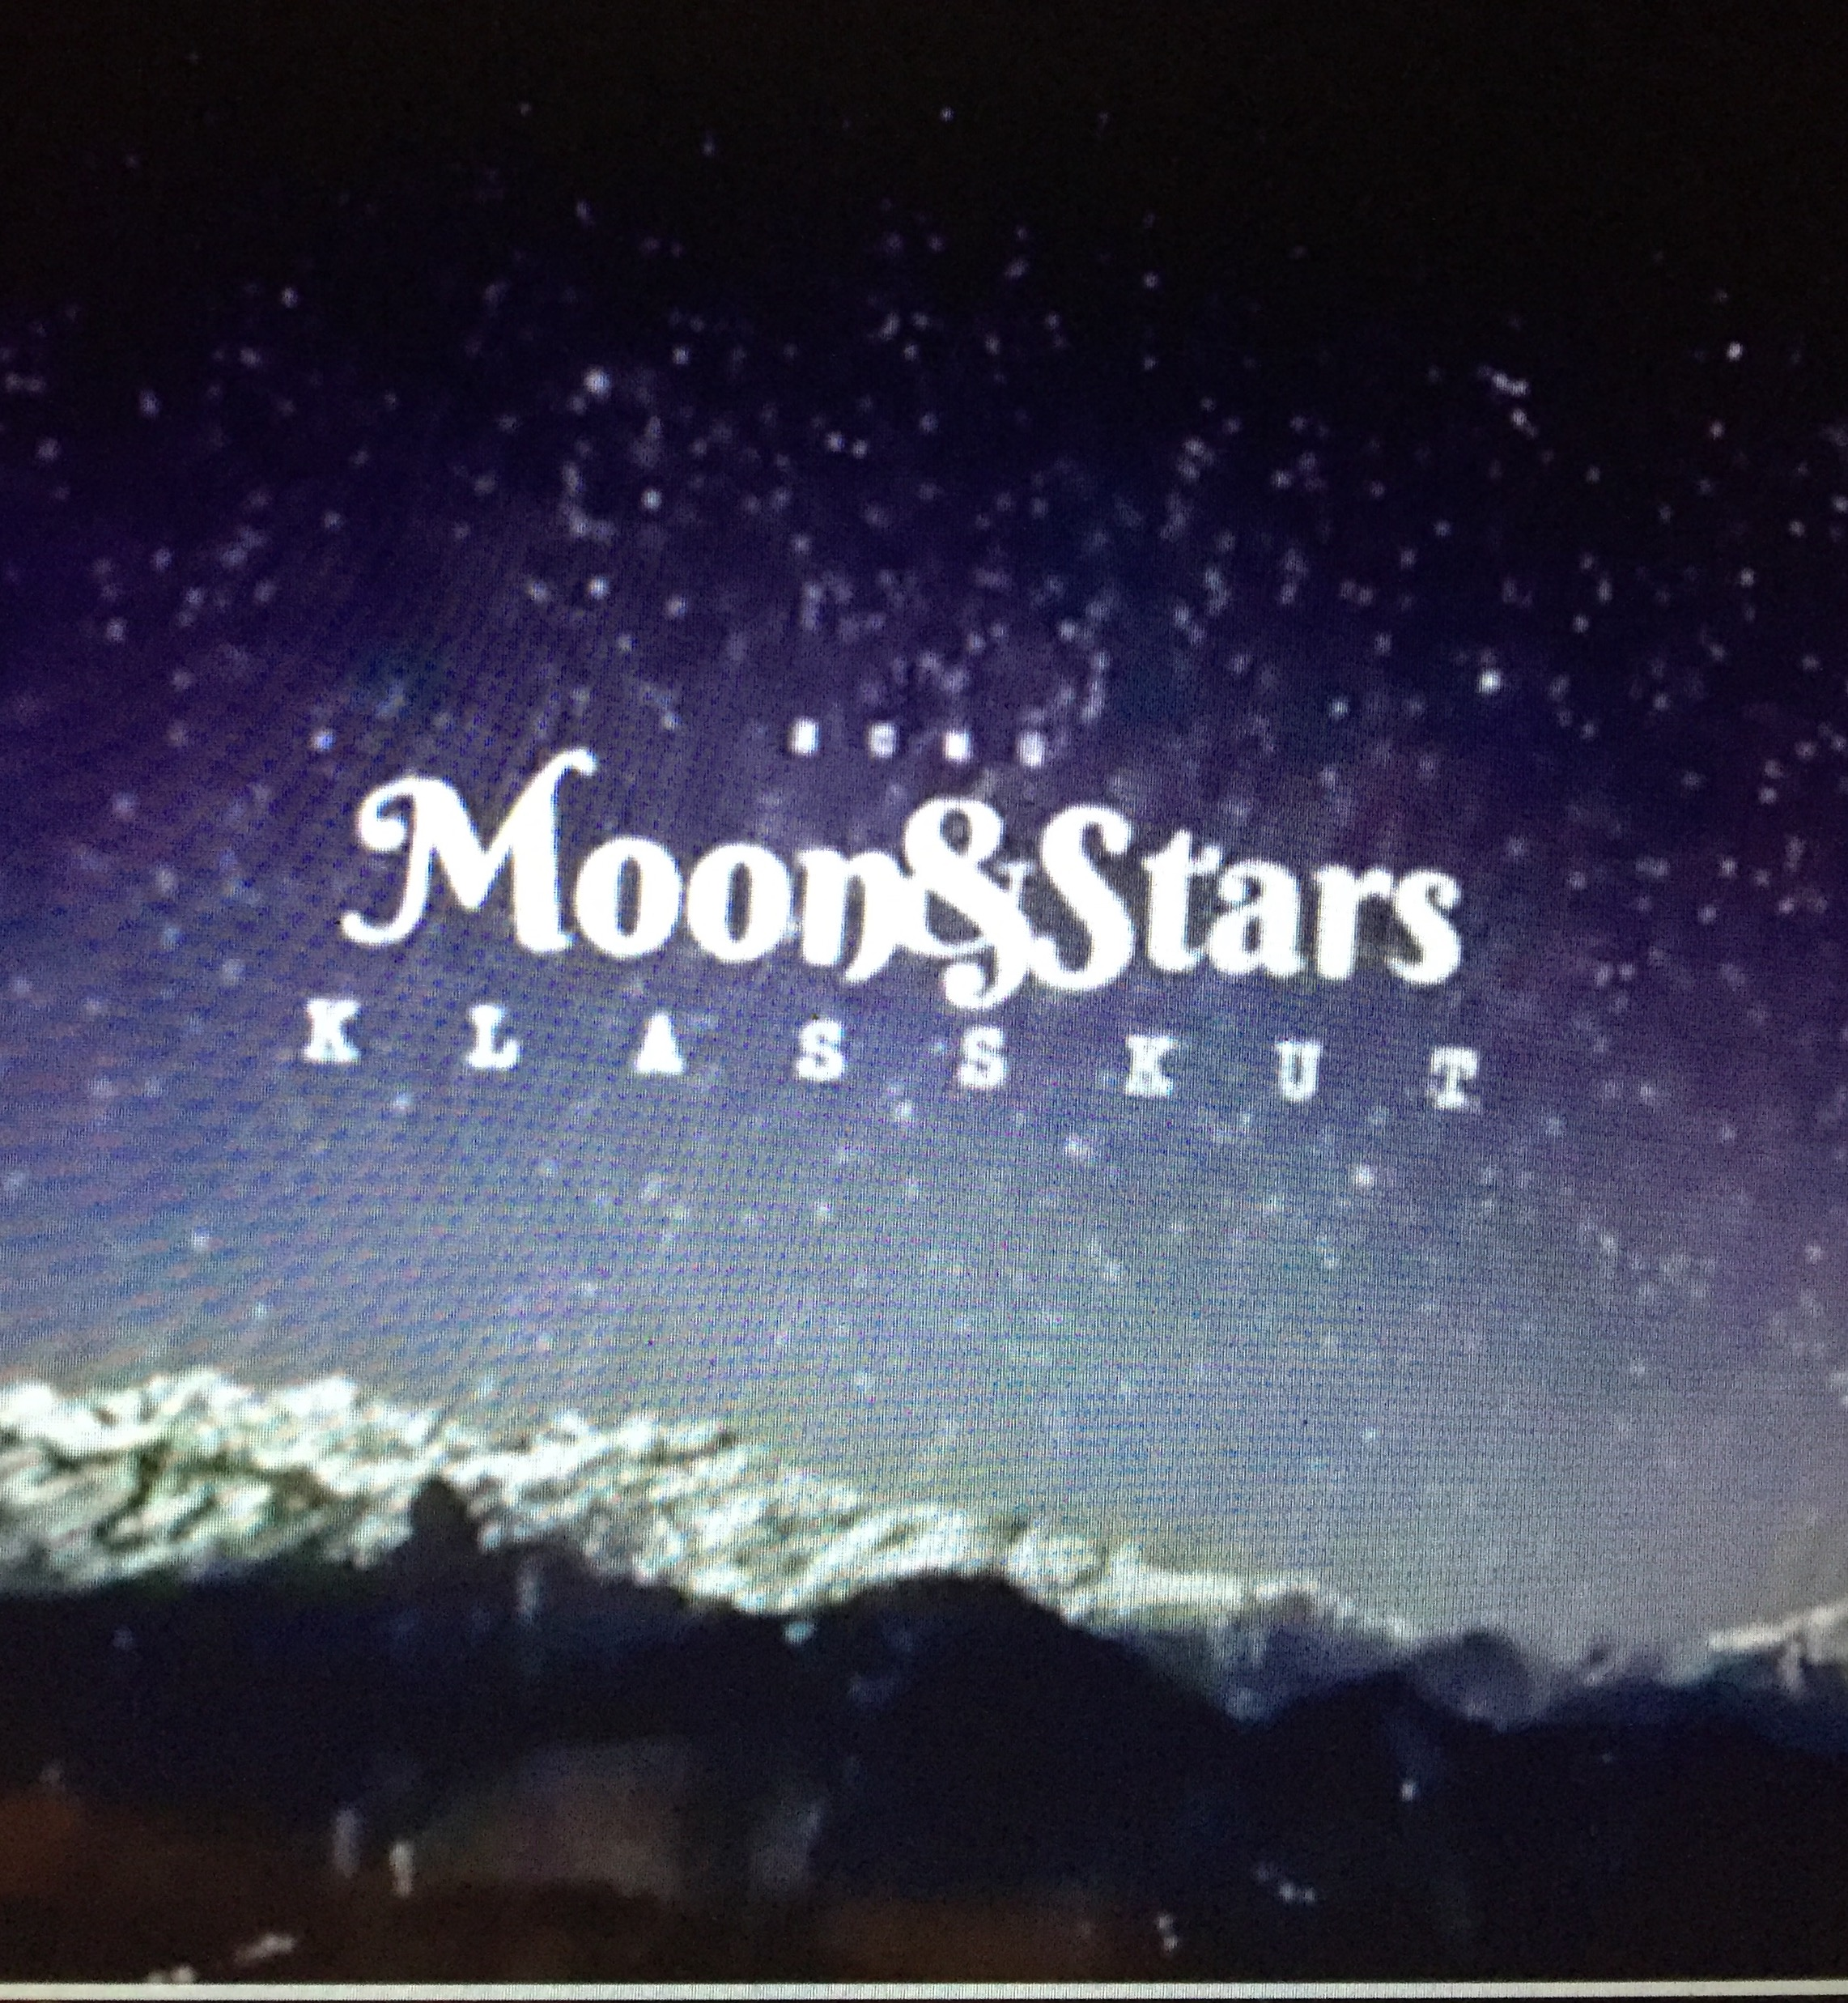 Moon and Stars - Moons and Stars - Single